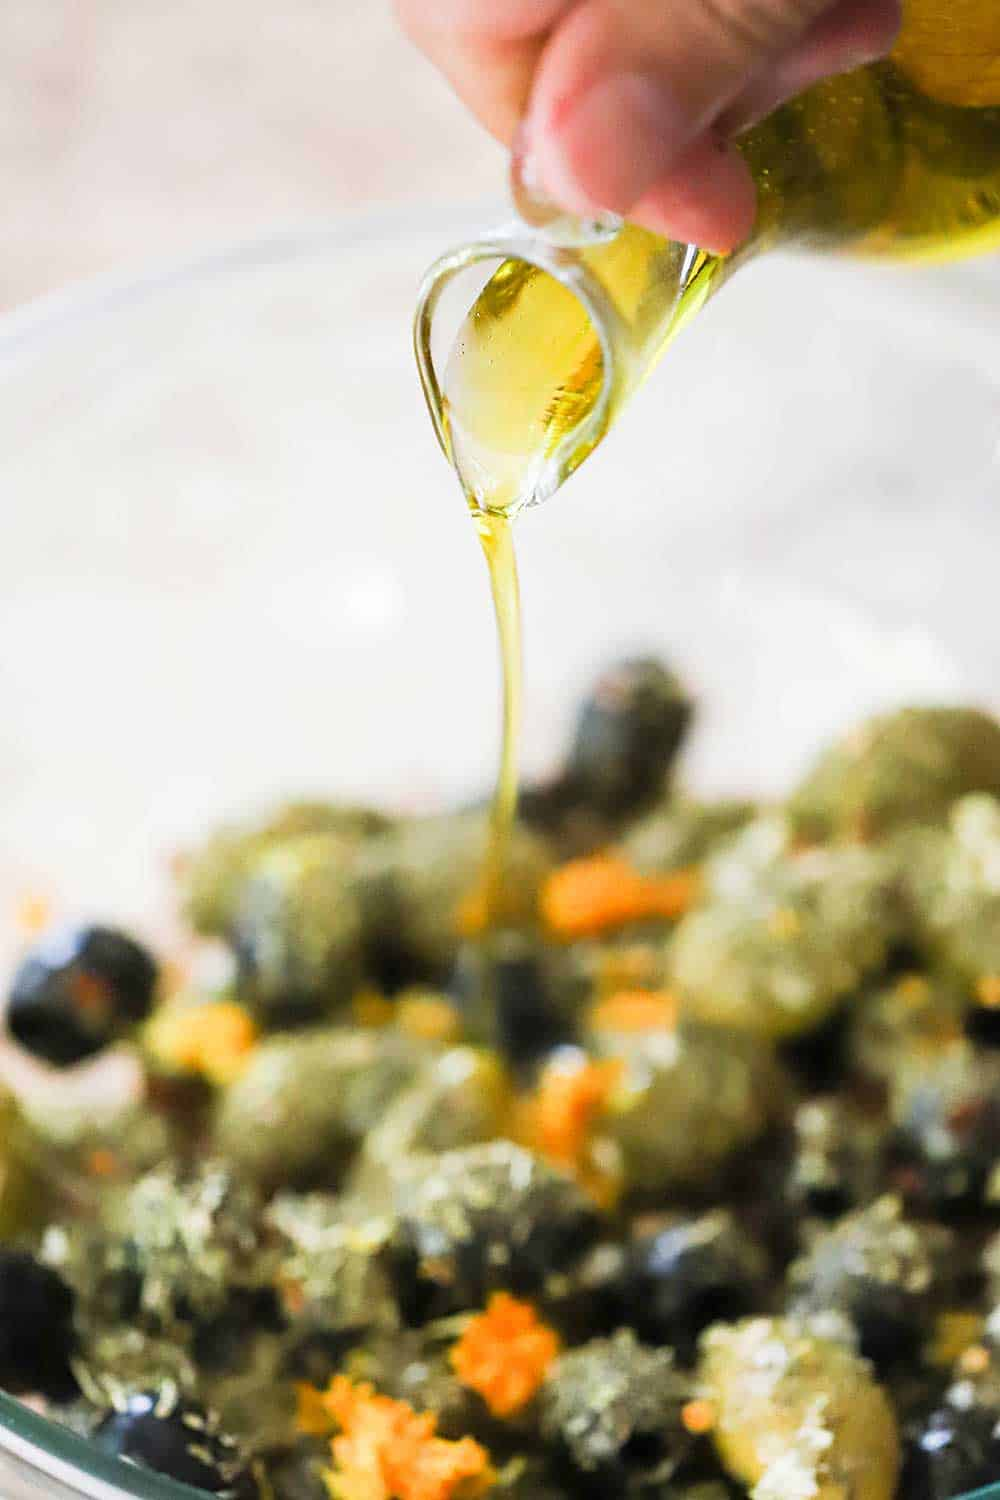 A hand pouring olive oil from a glass oil holder into a glass bowl filled with marinated olives.